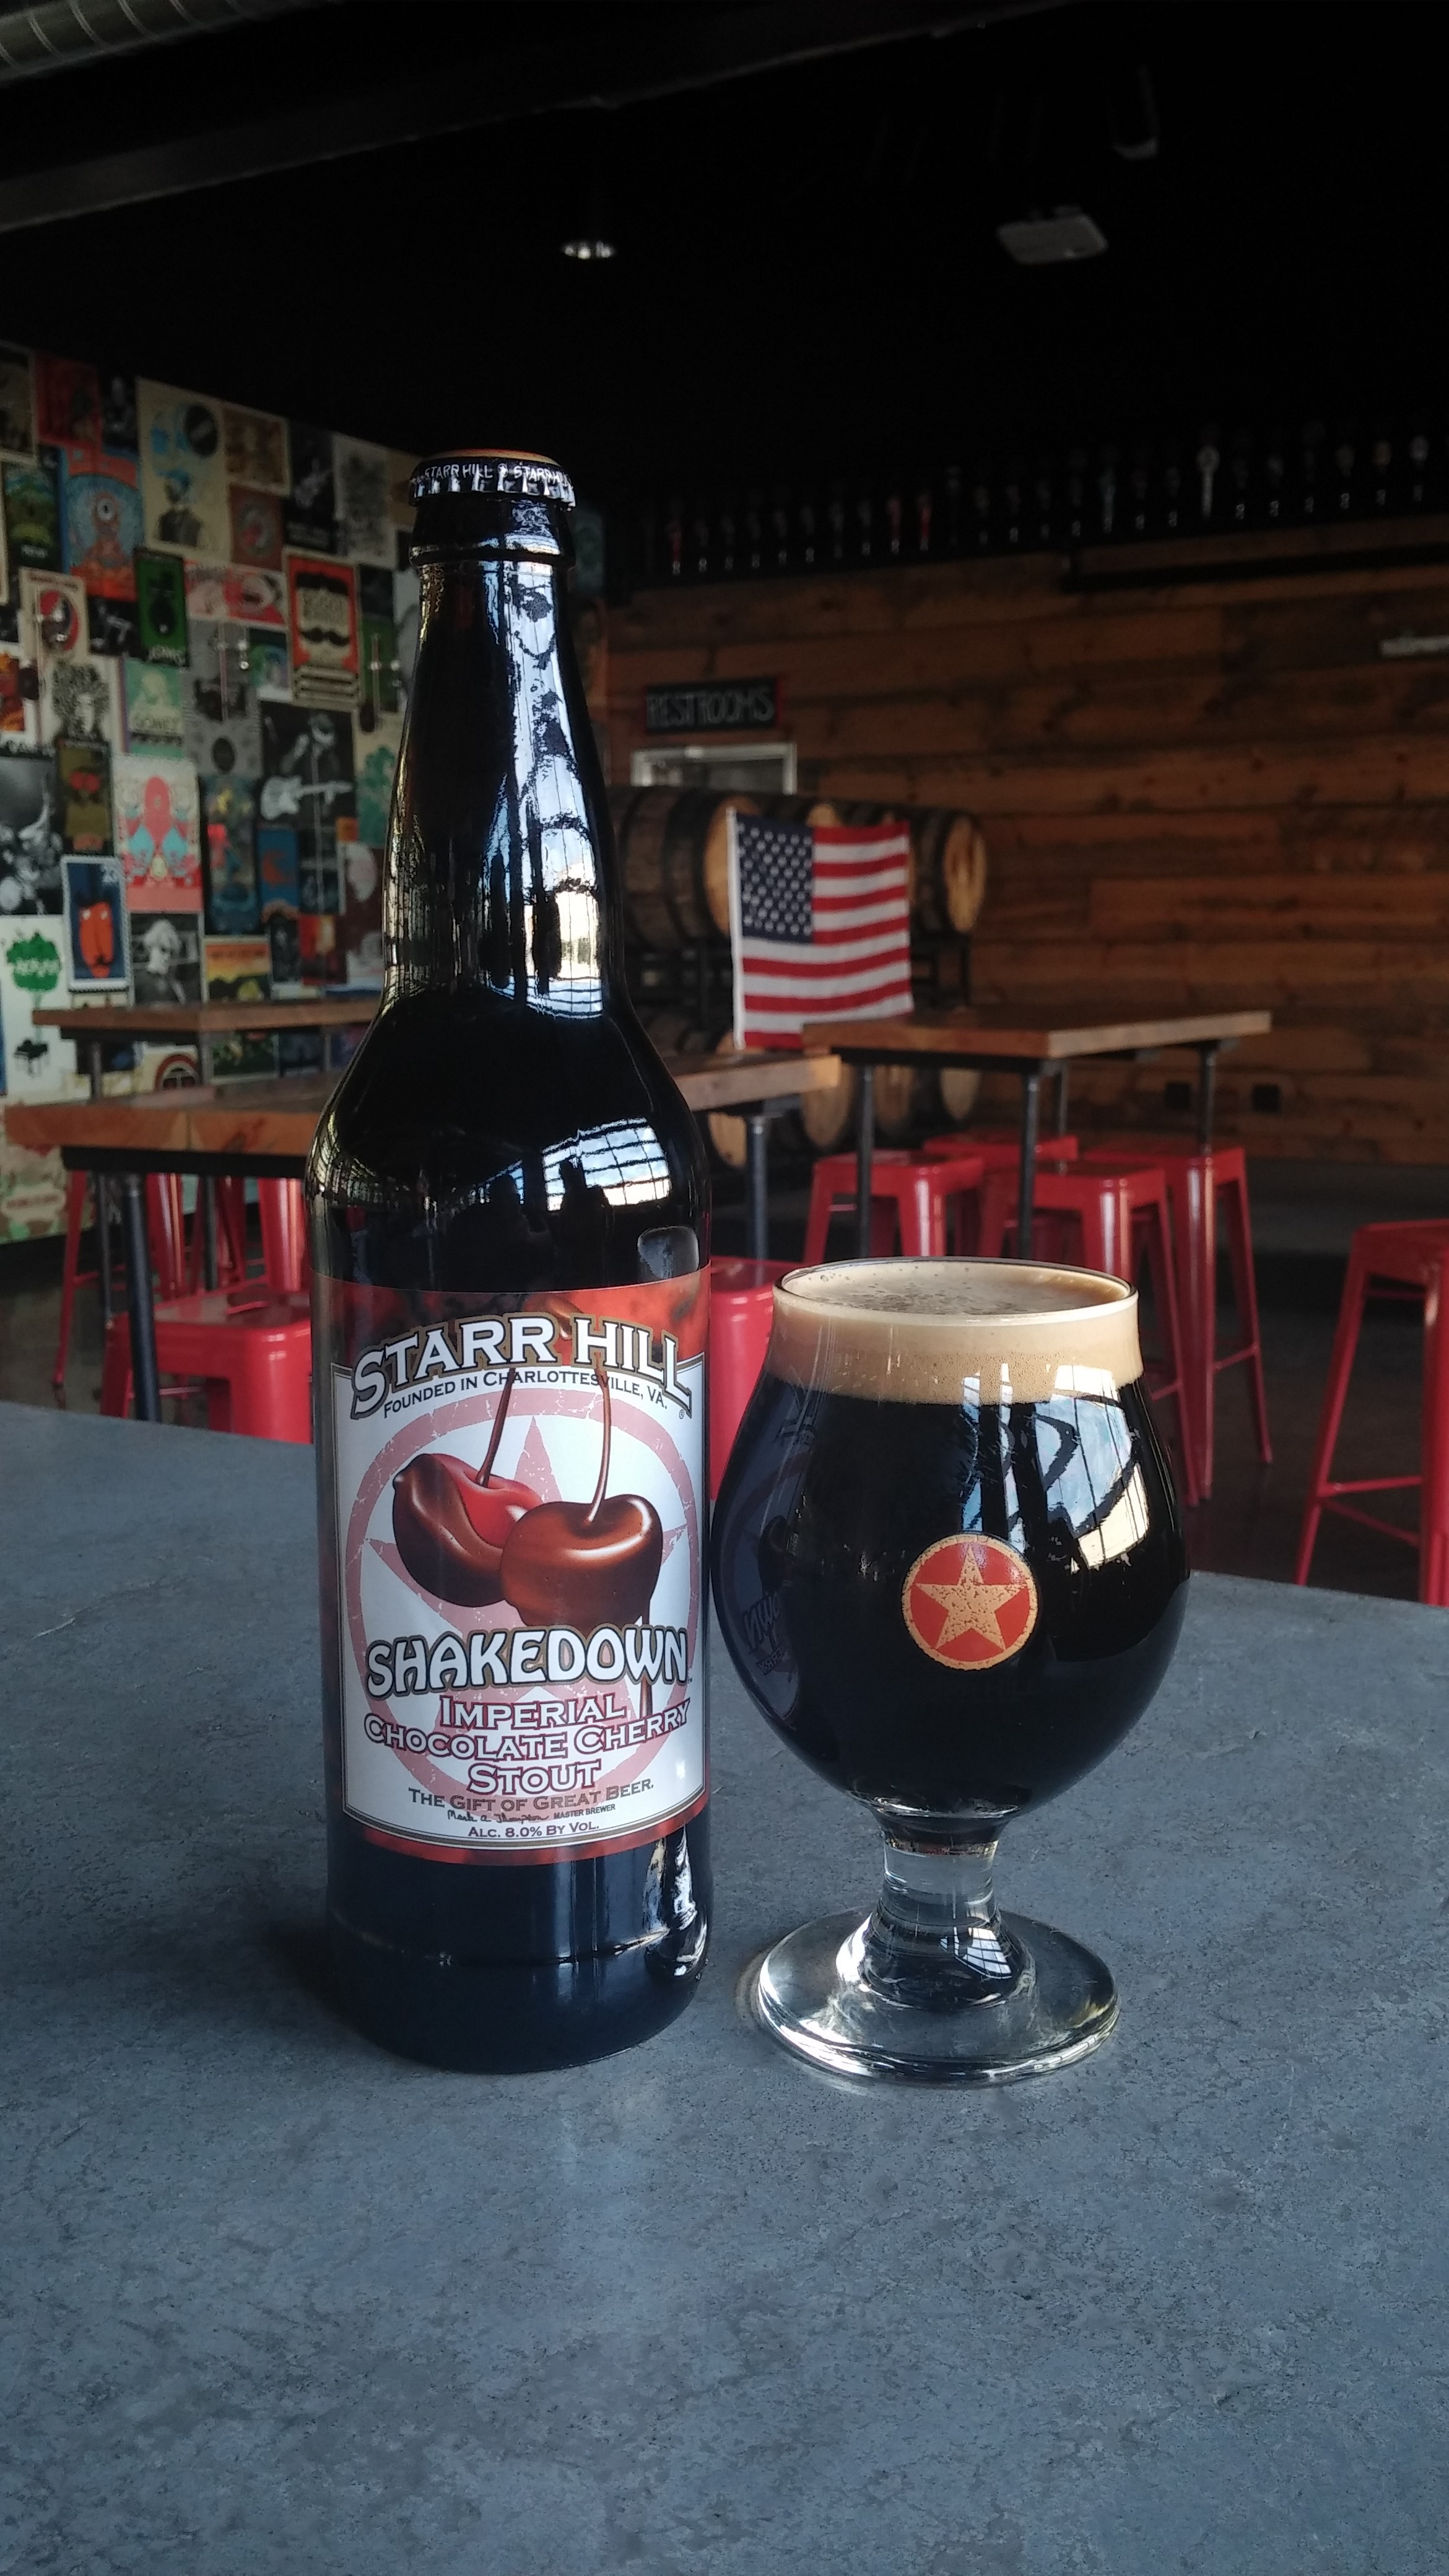 Starr Hill Shakedown Imperial Chocolate Cherry Stout